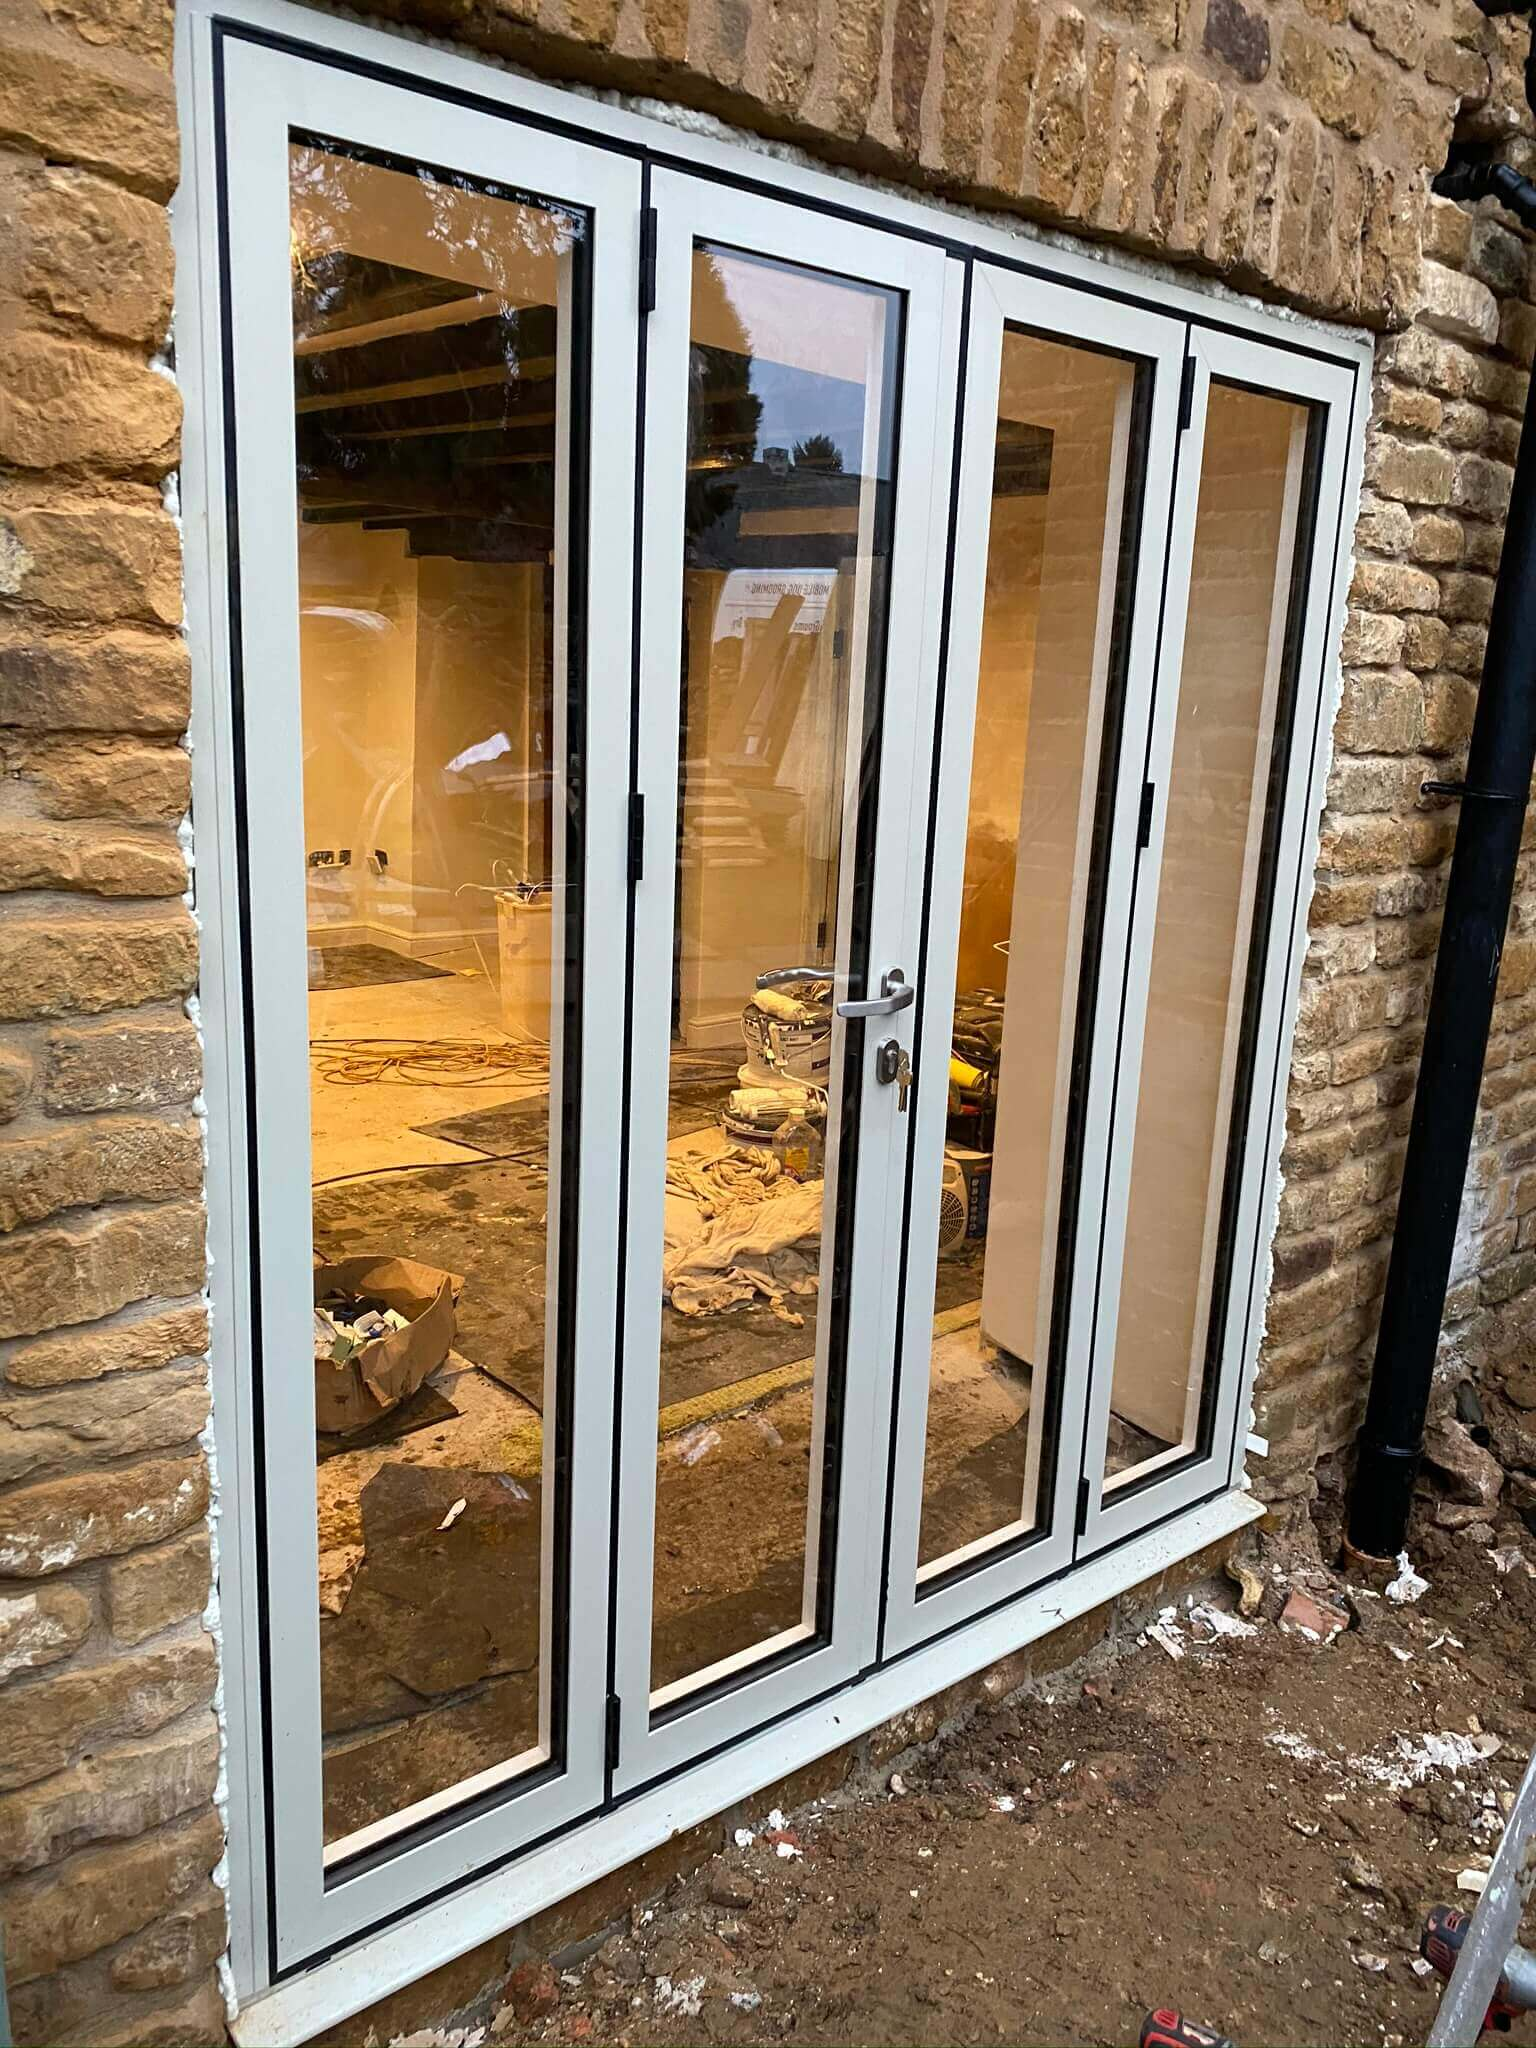 White patio doors installed in old brick wall